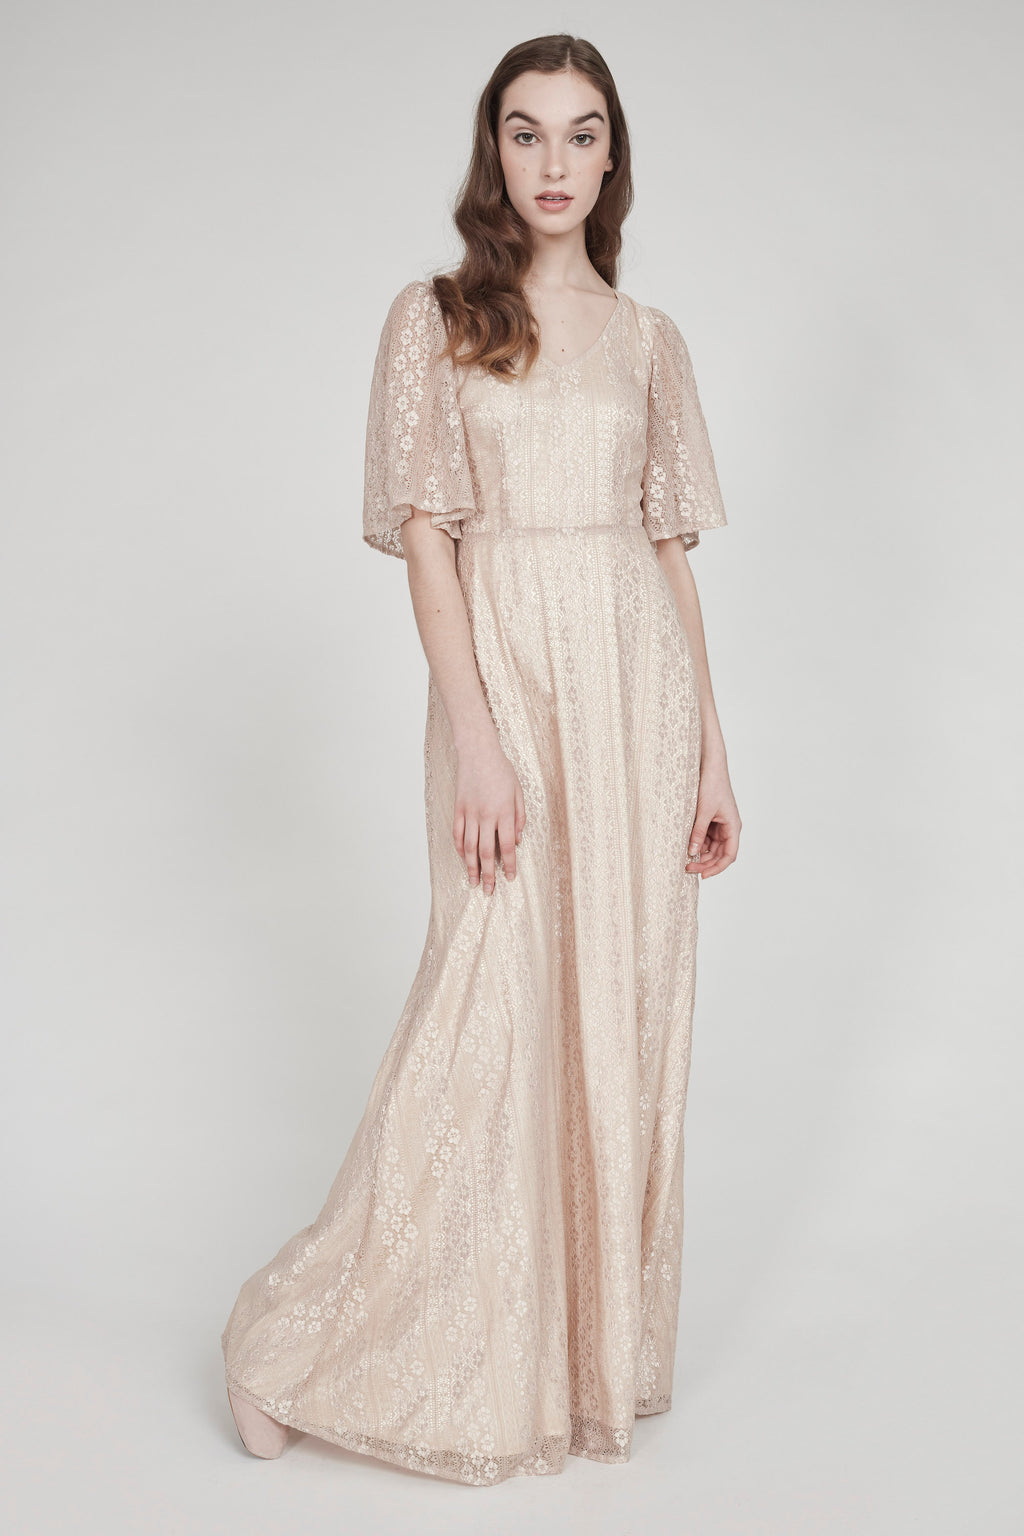 La Mer | Bell-Sleeved Lace Gown | Champagne